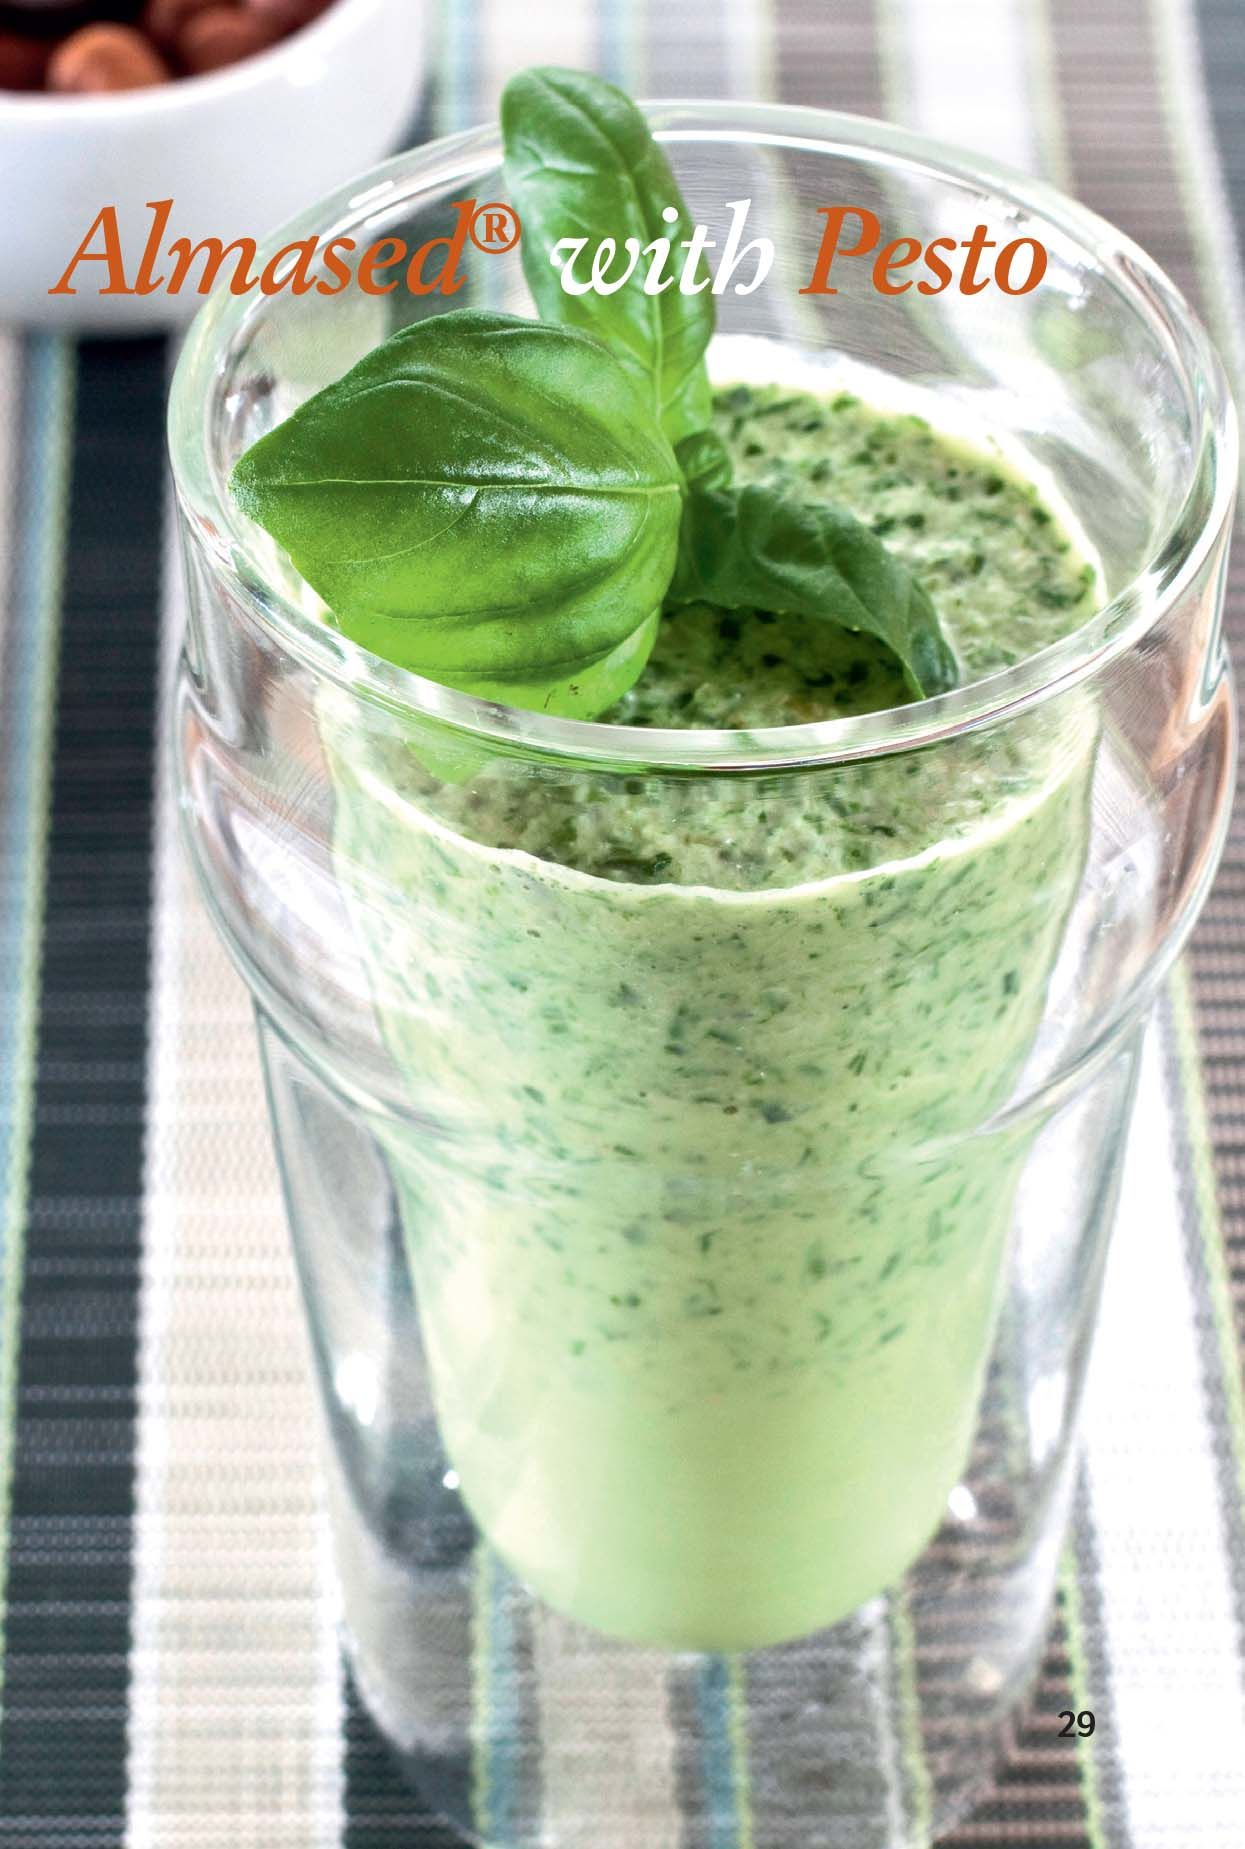 almased with pesto 10 oz low fat milk 10 tbsp almased with pesto 1 2 cup packed fresh. Black Bedroom Furniture Sets. Home Design Ideas